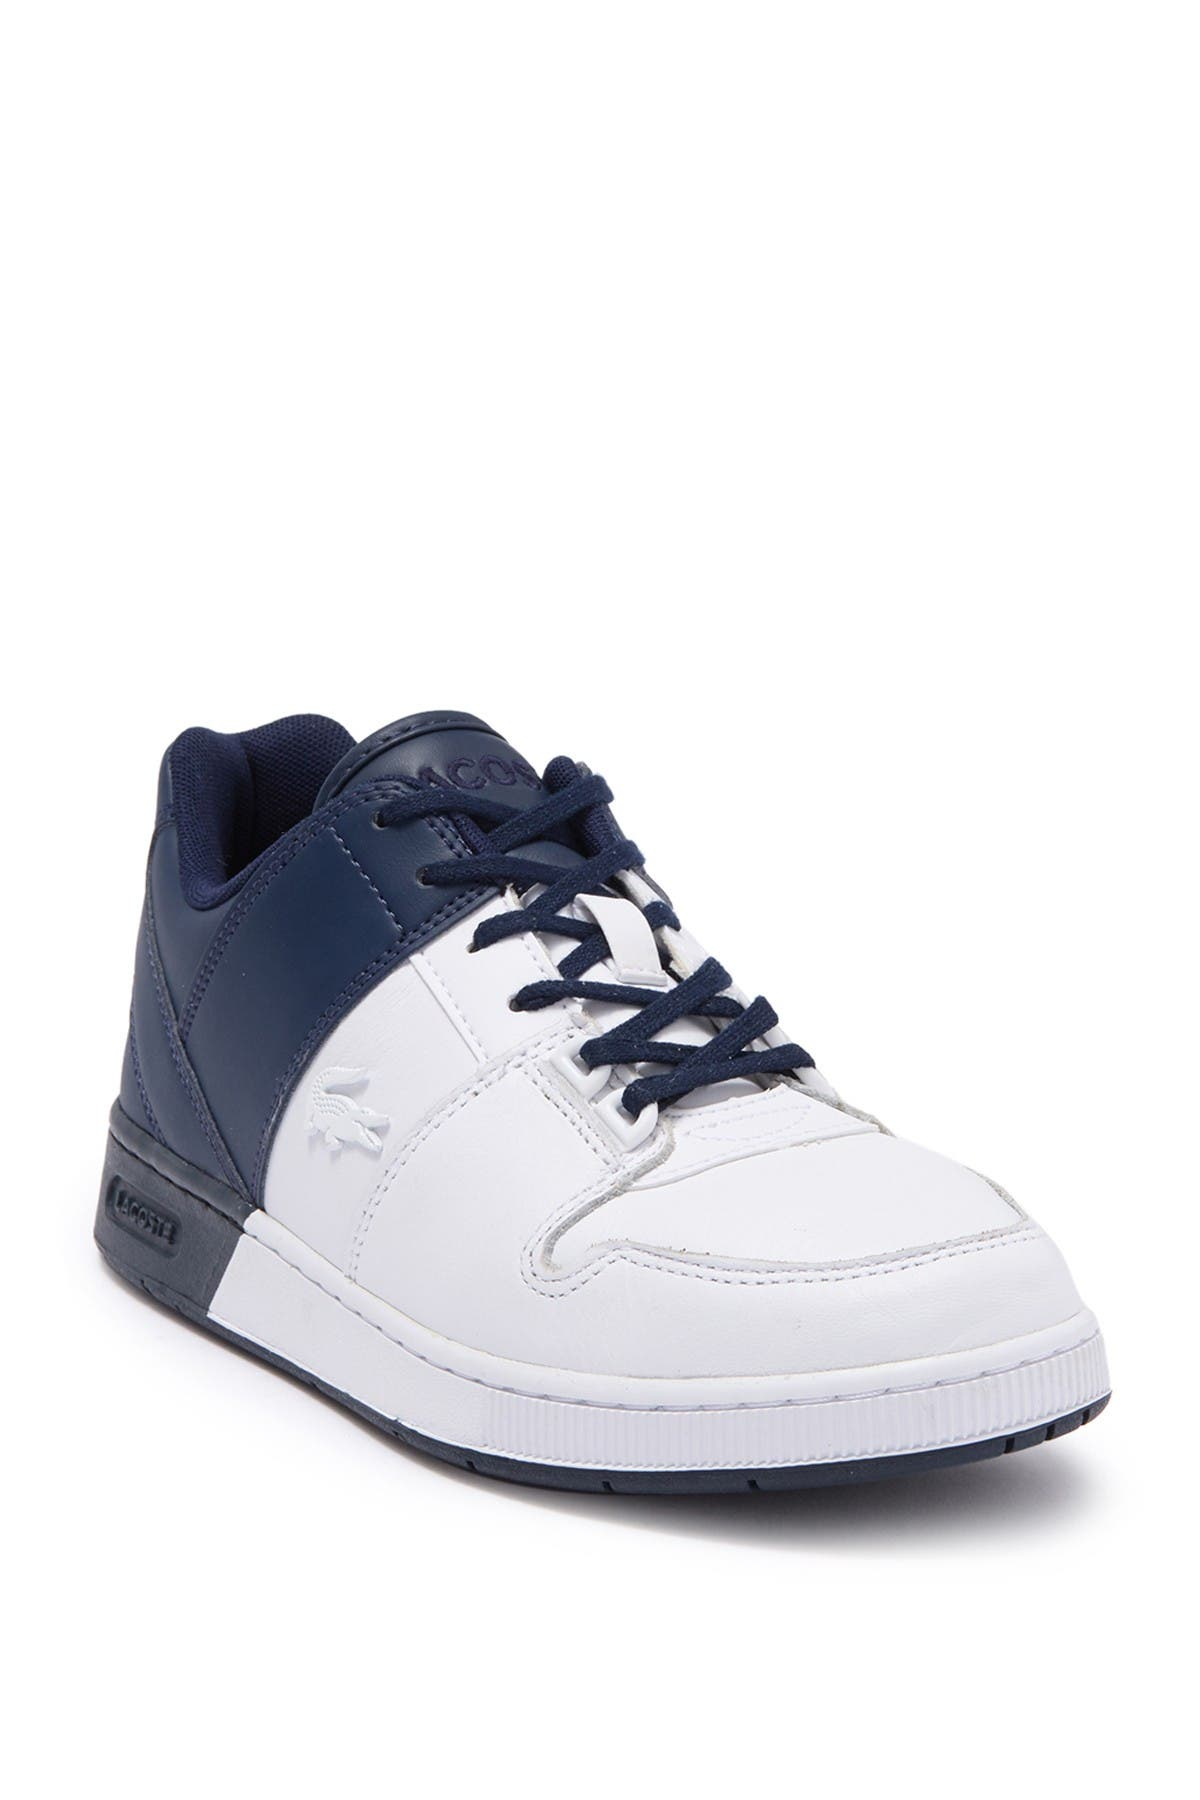 Image of Lacoste Thrill Sneaker